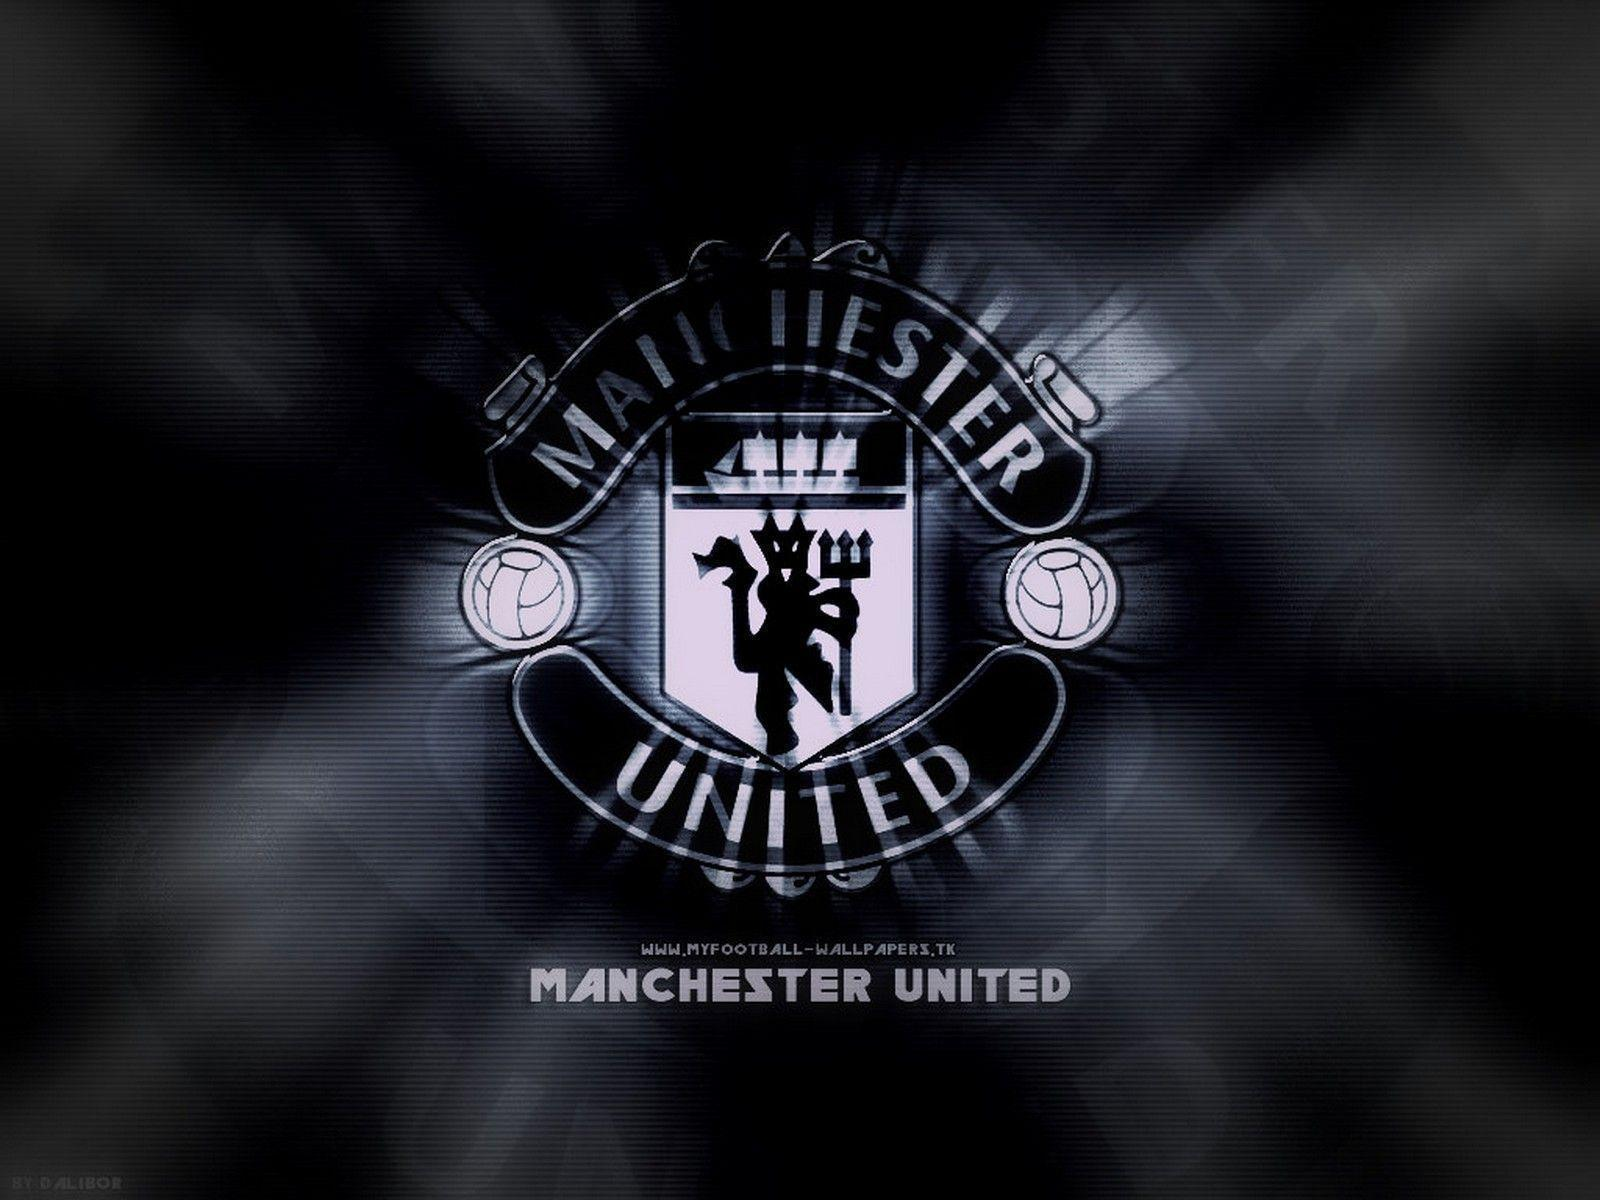 Sports Wallpaper: Manchester United Black Wallpaper Free HD .